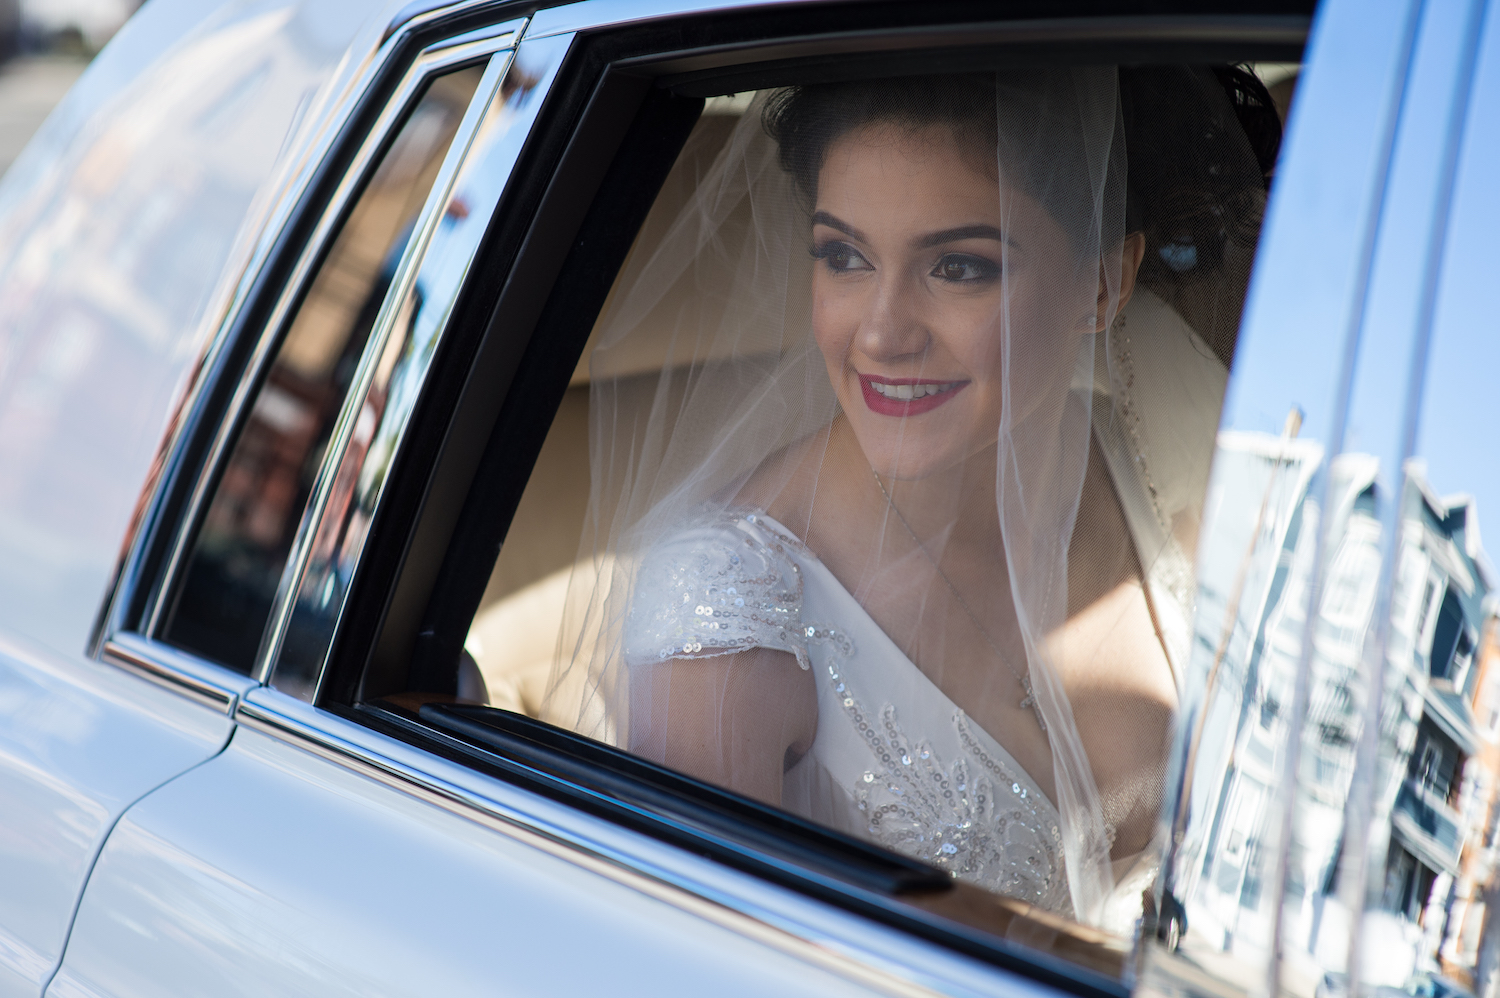 jessica-in-dress-looking-out-car-window-ceremony-wedding-photography-nj